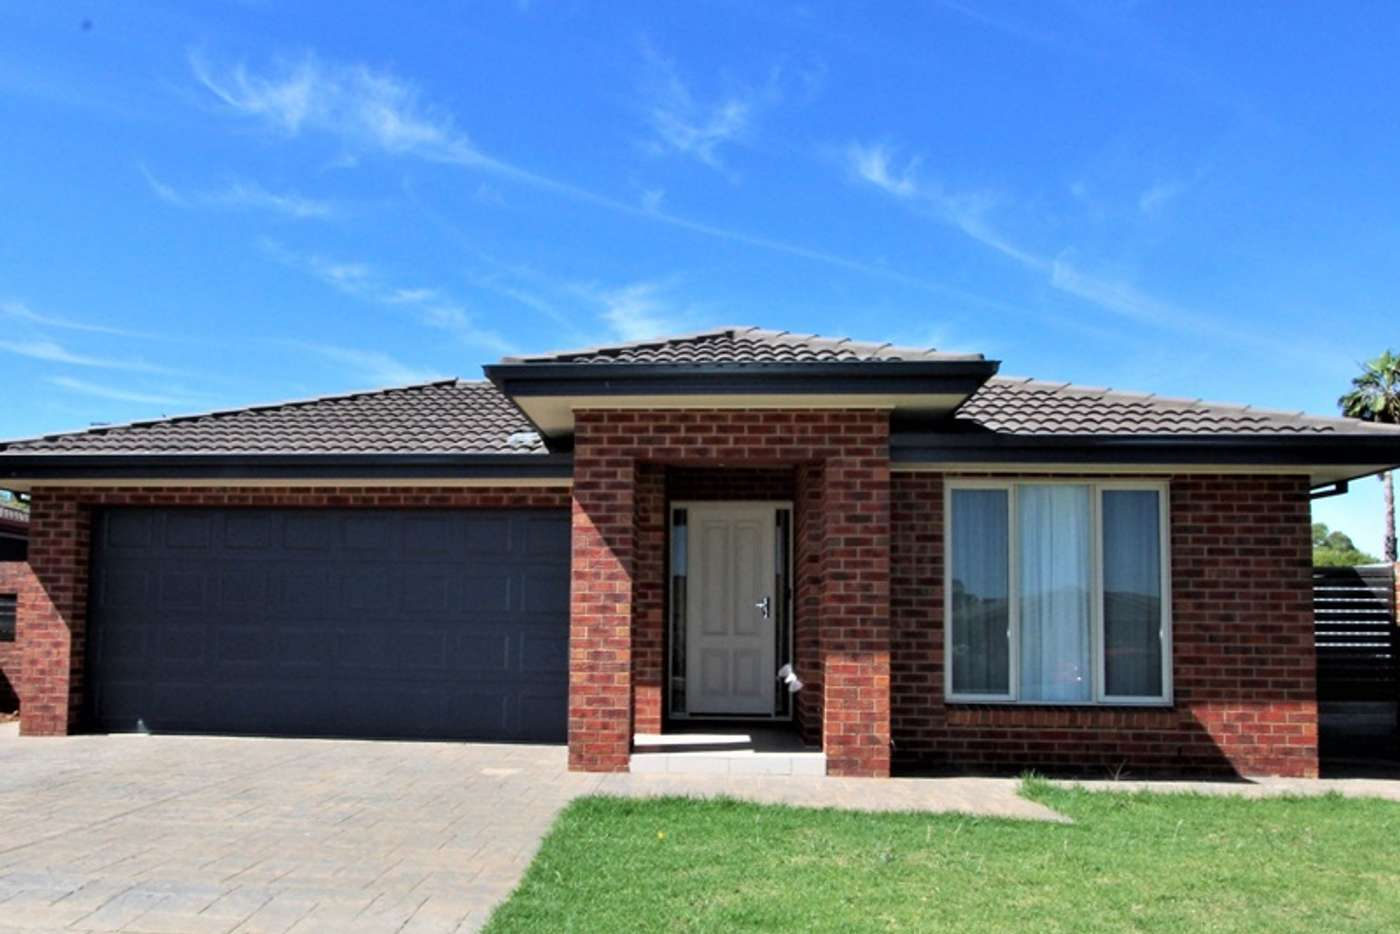 Main view of Homely house listing, 121 Raye Street, Tolland NSW 2650